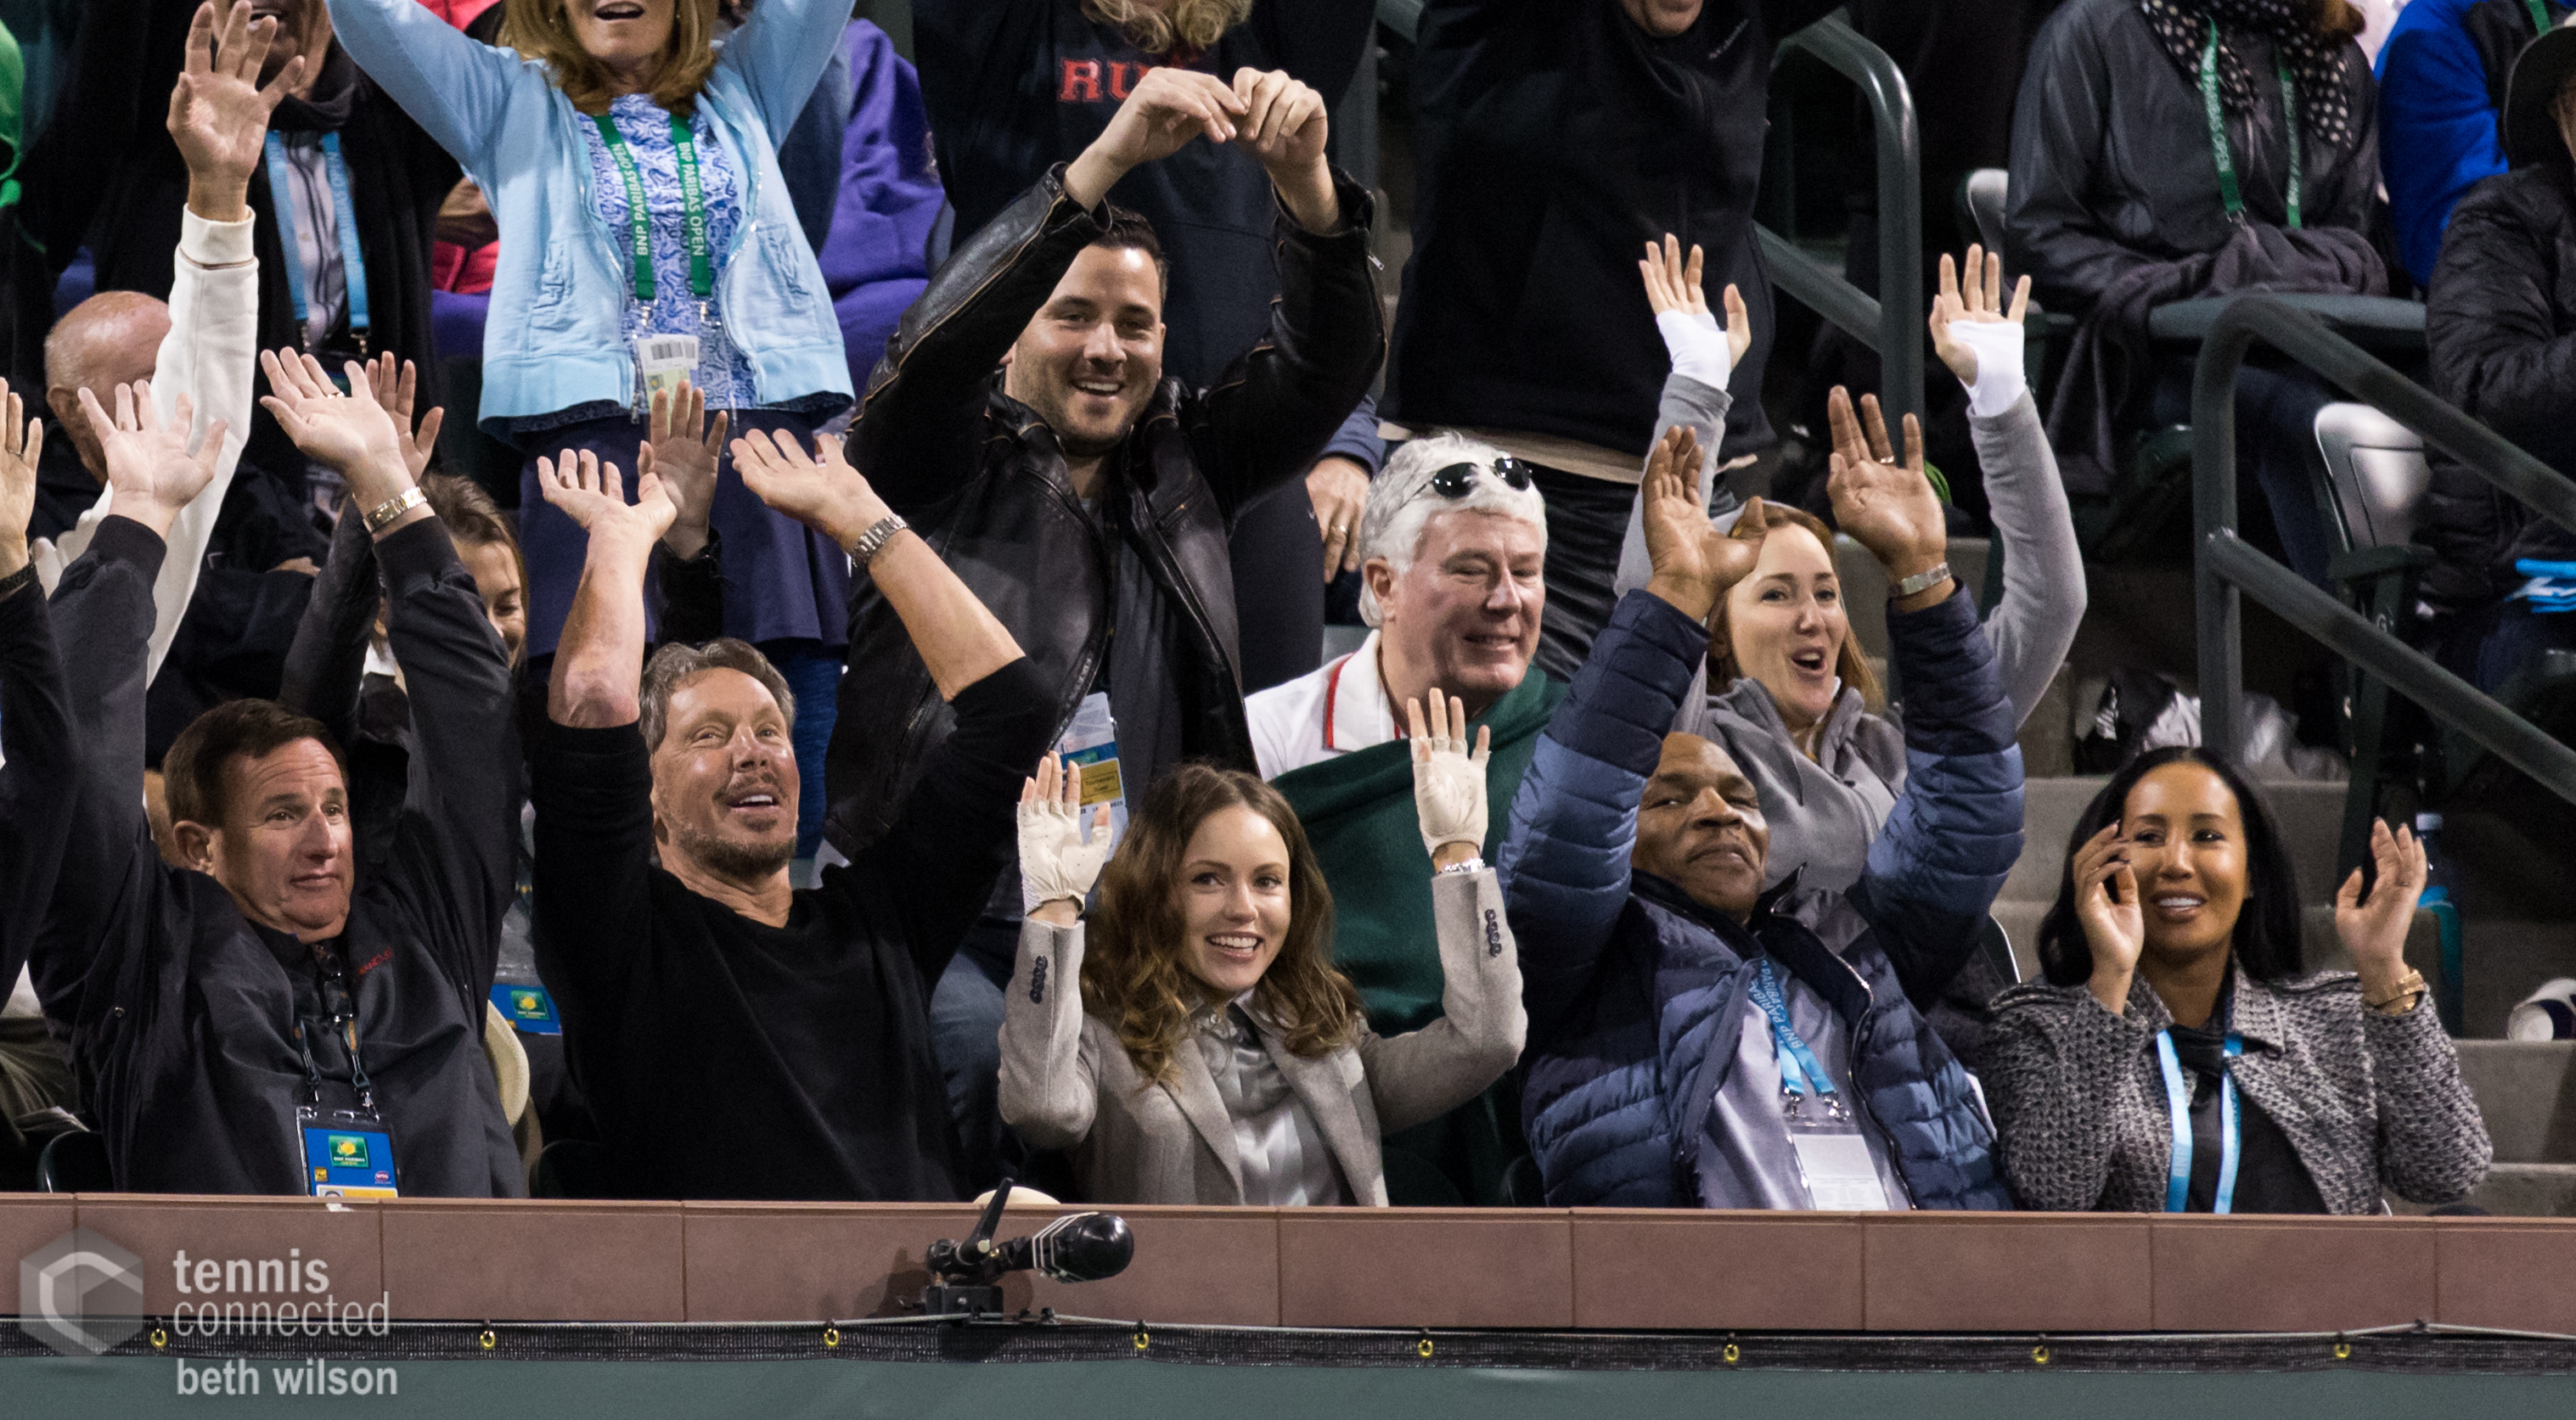 Everyone does the wave - even Larry Ellison and Mike Tyson